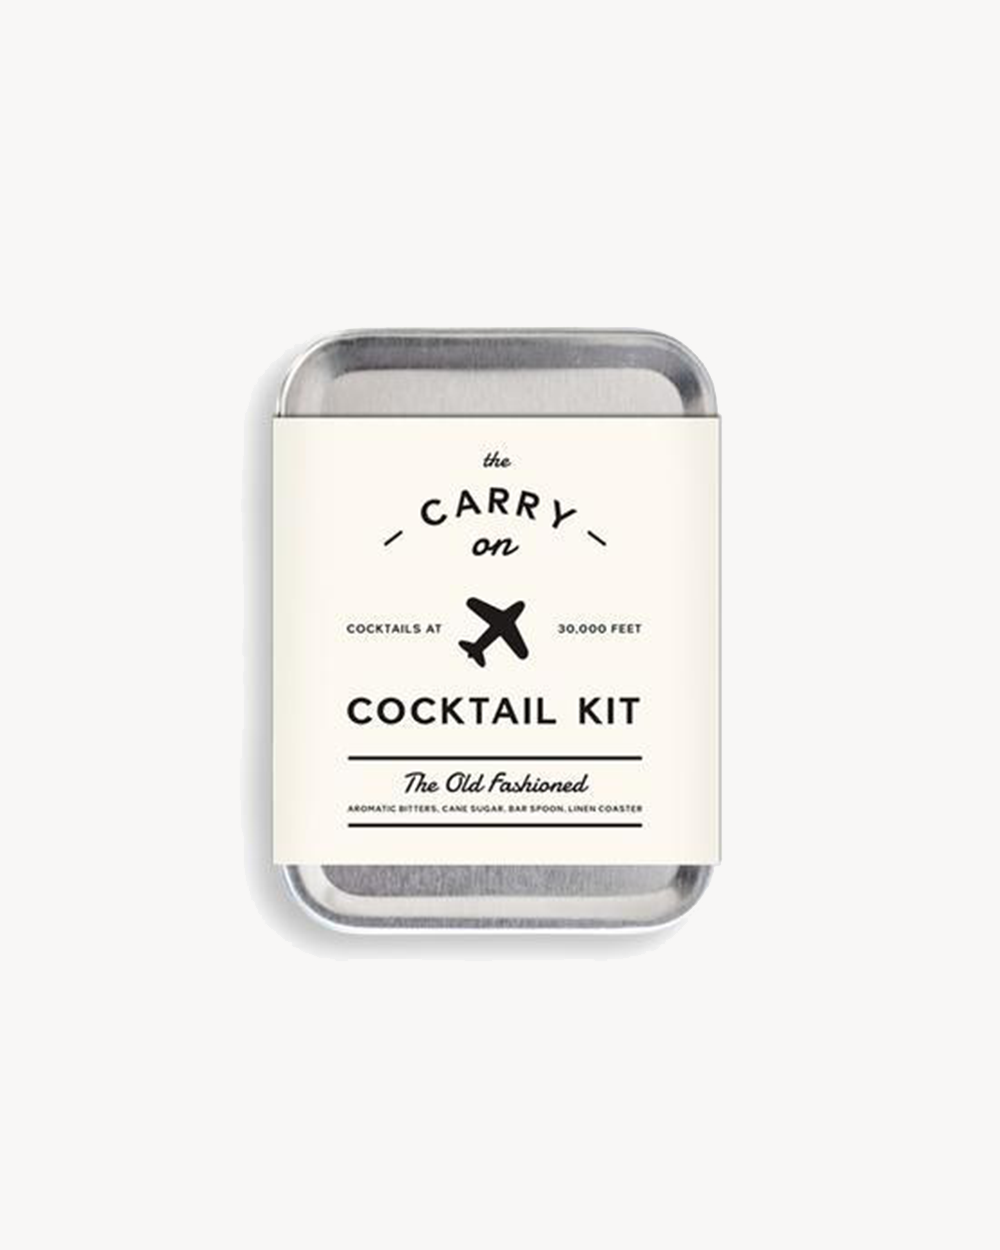 The Cocktail Kit - The Old Fashioned